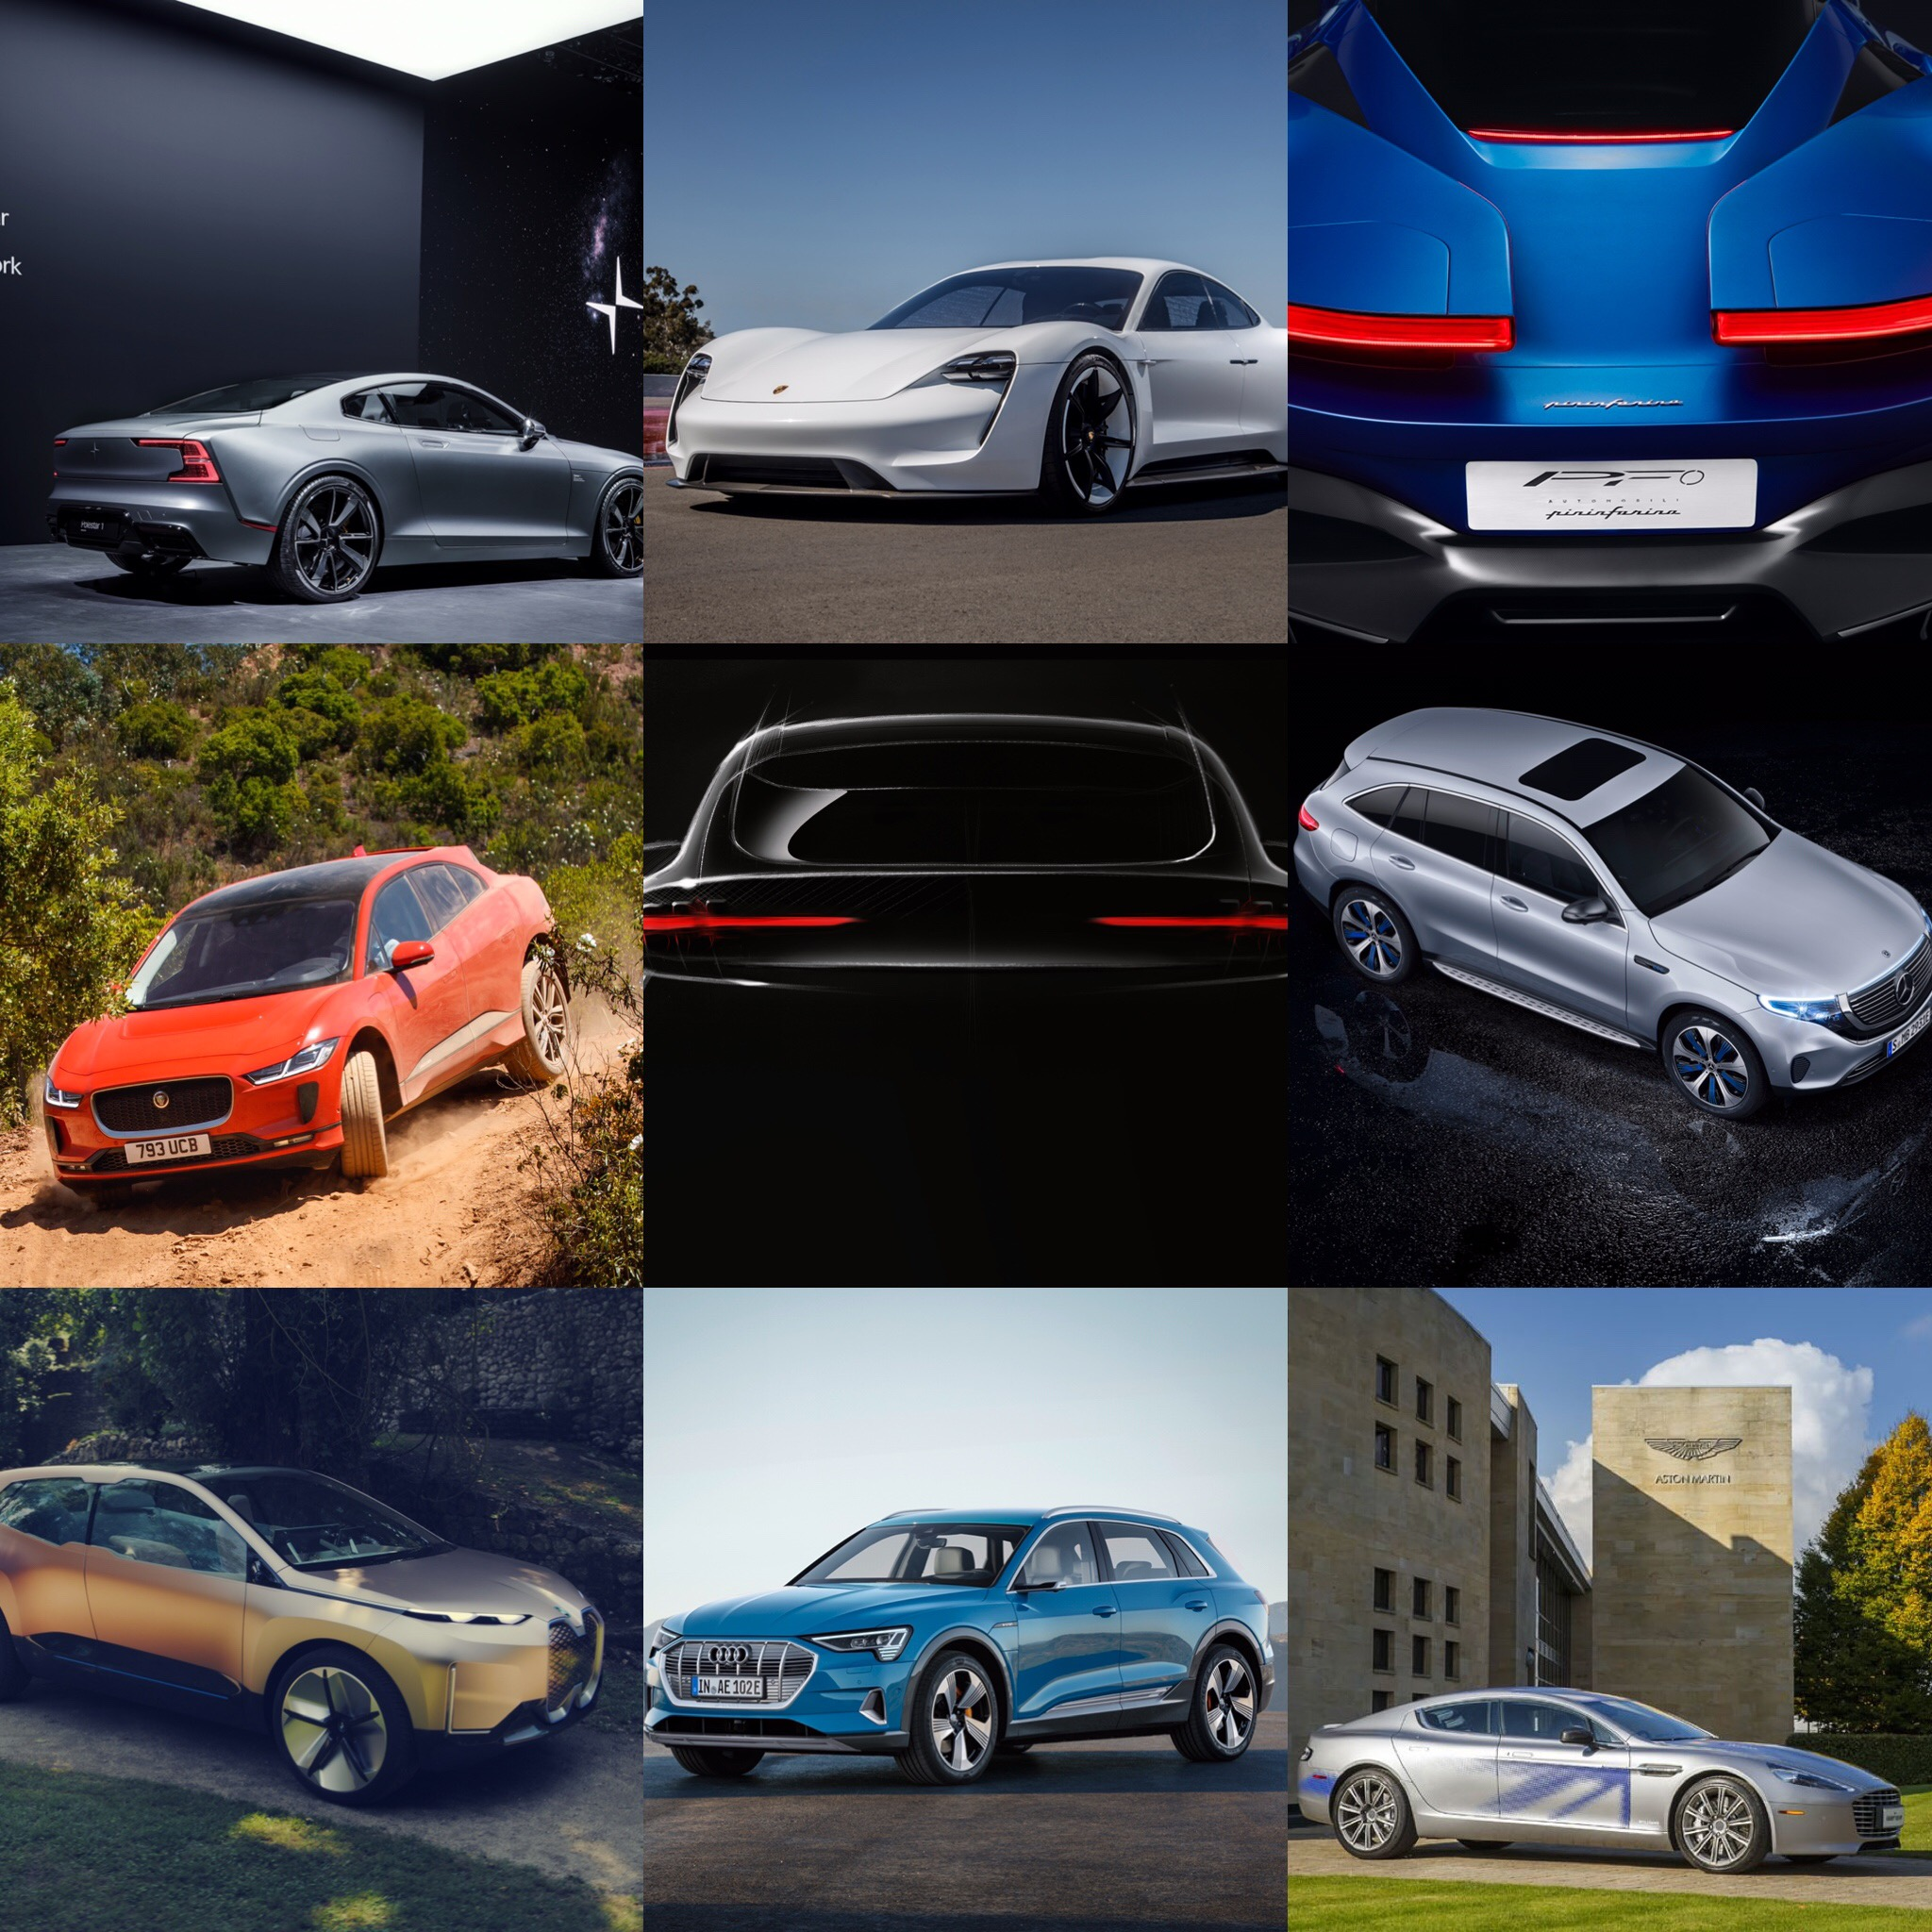 Electric Cars Go Mainstream And Upscale